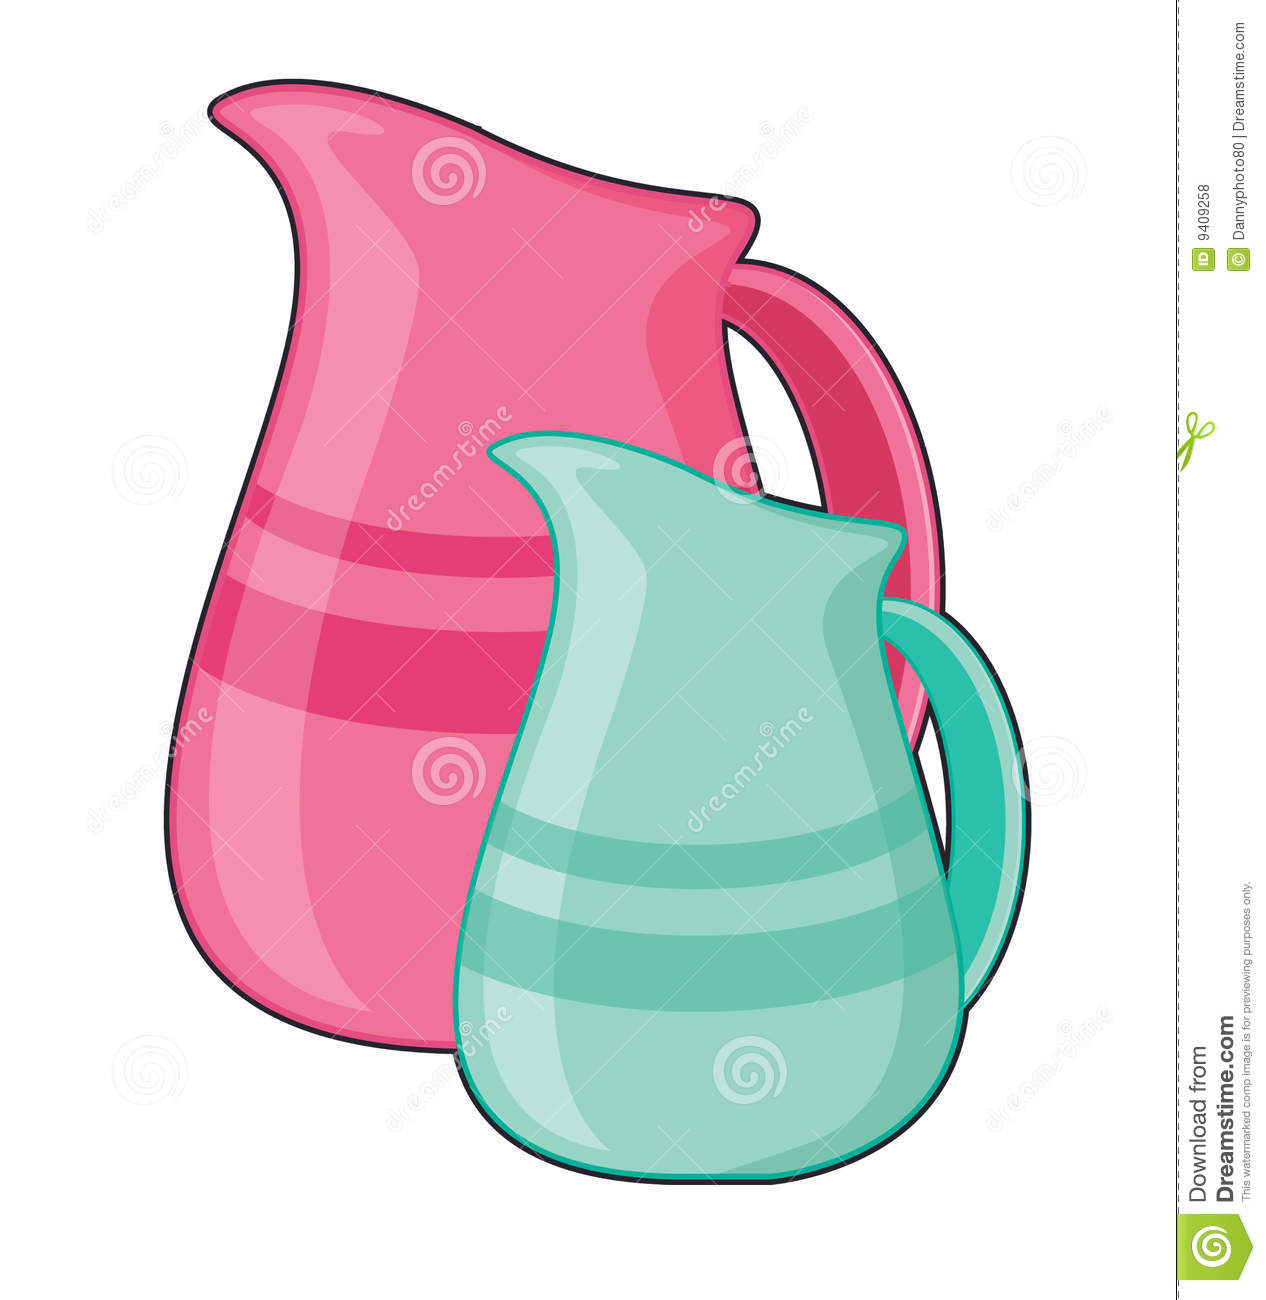 Jugs Stock Illustrations.